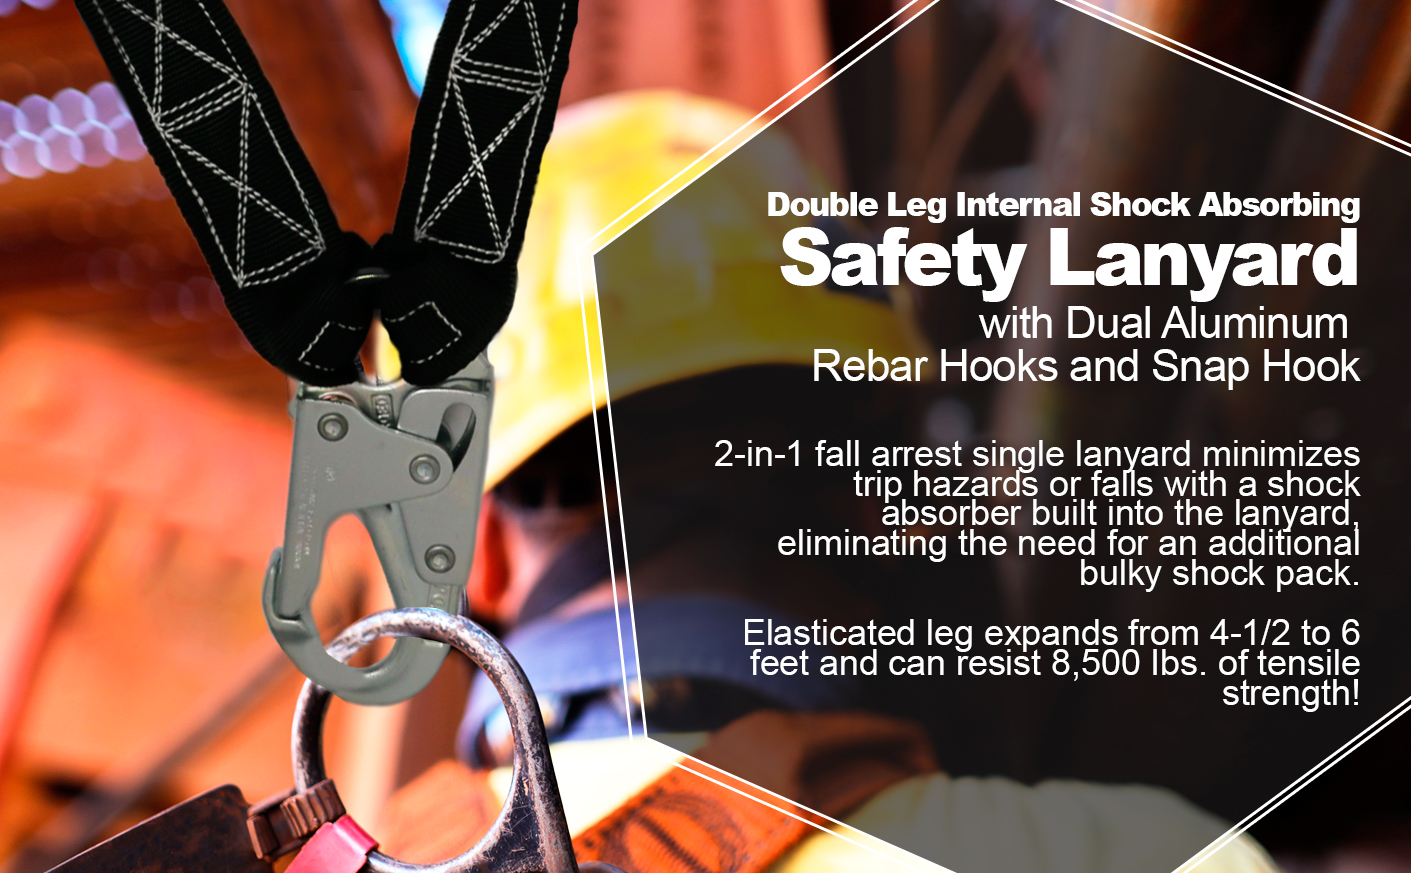 6 FT Double Leg Internal Shock Absorbing Lanyard with Dual Aluminum Rebar Hooks and Snap Hook. Quick One Safety